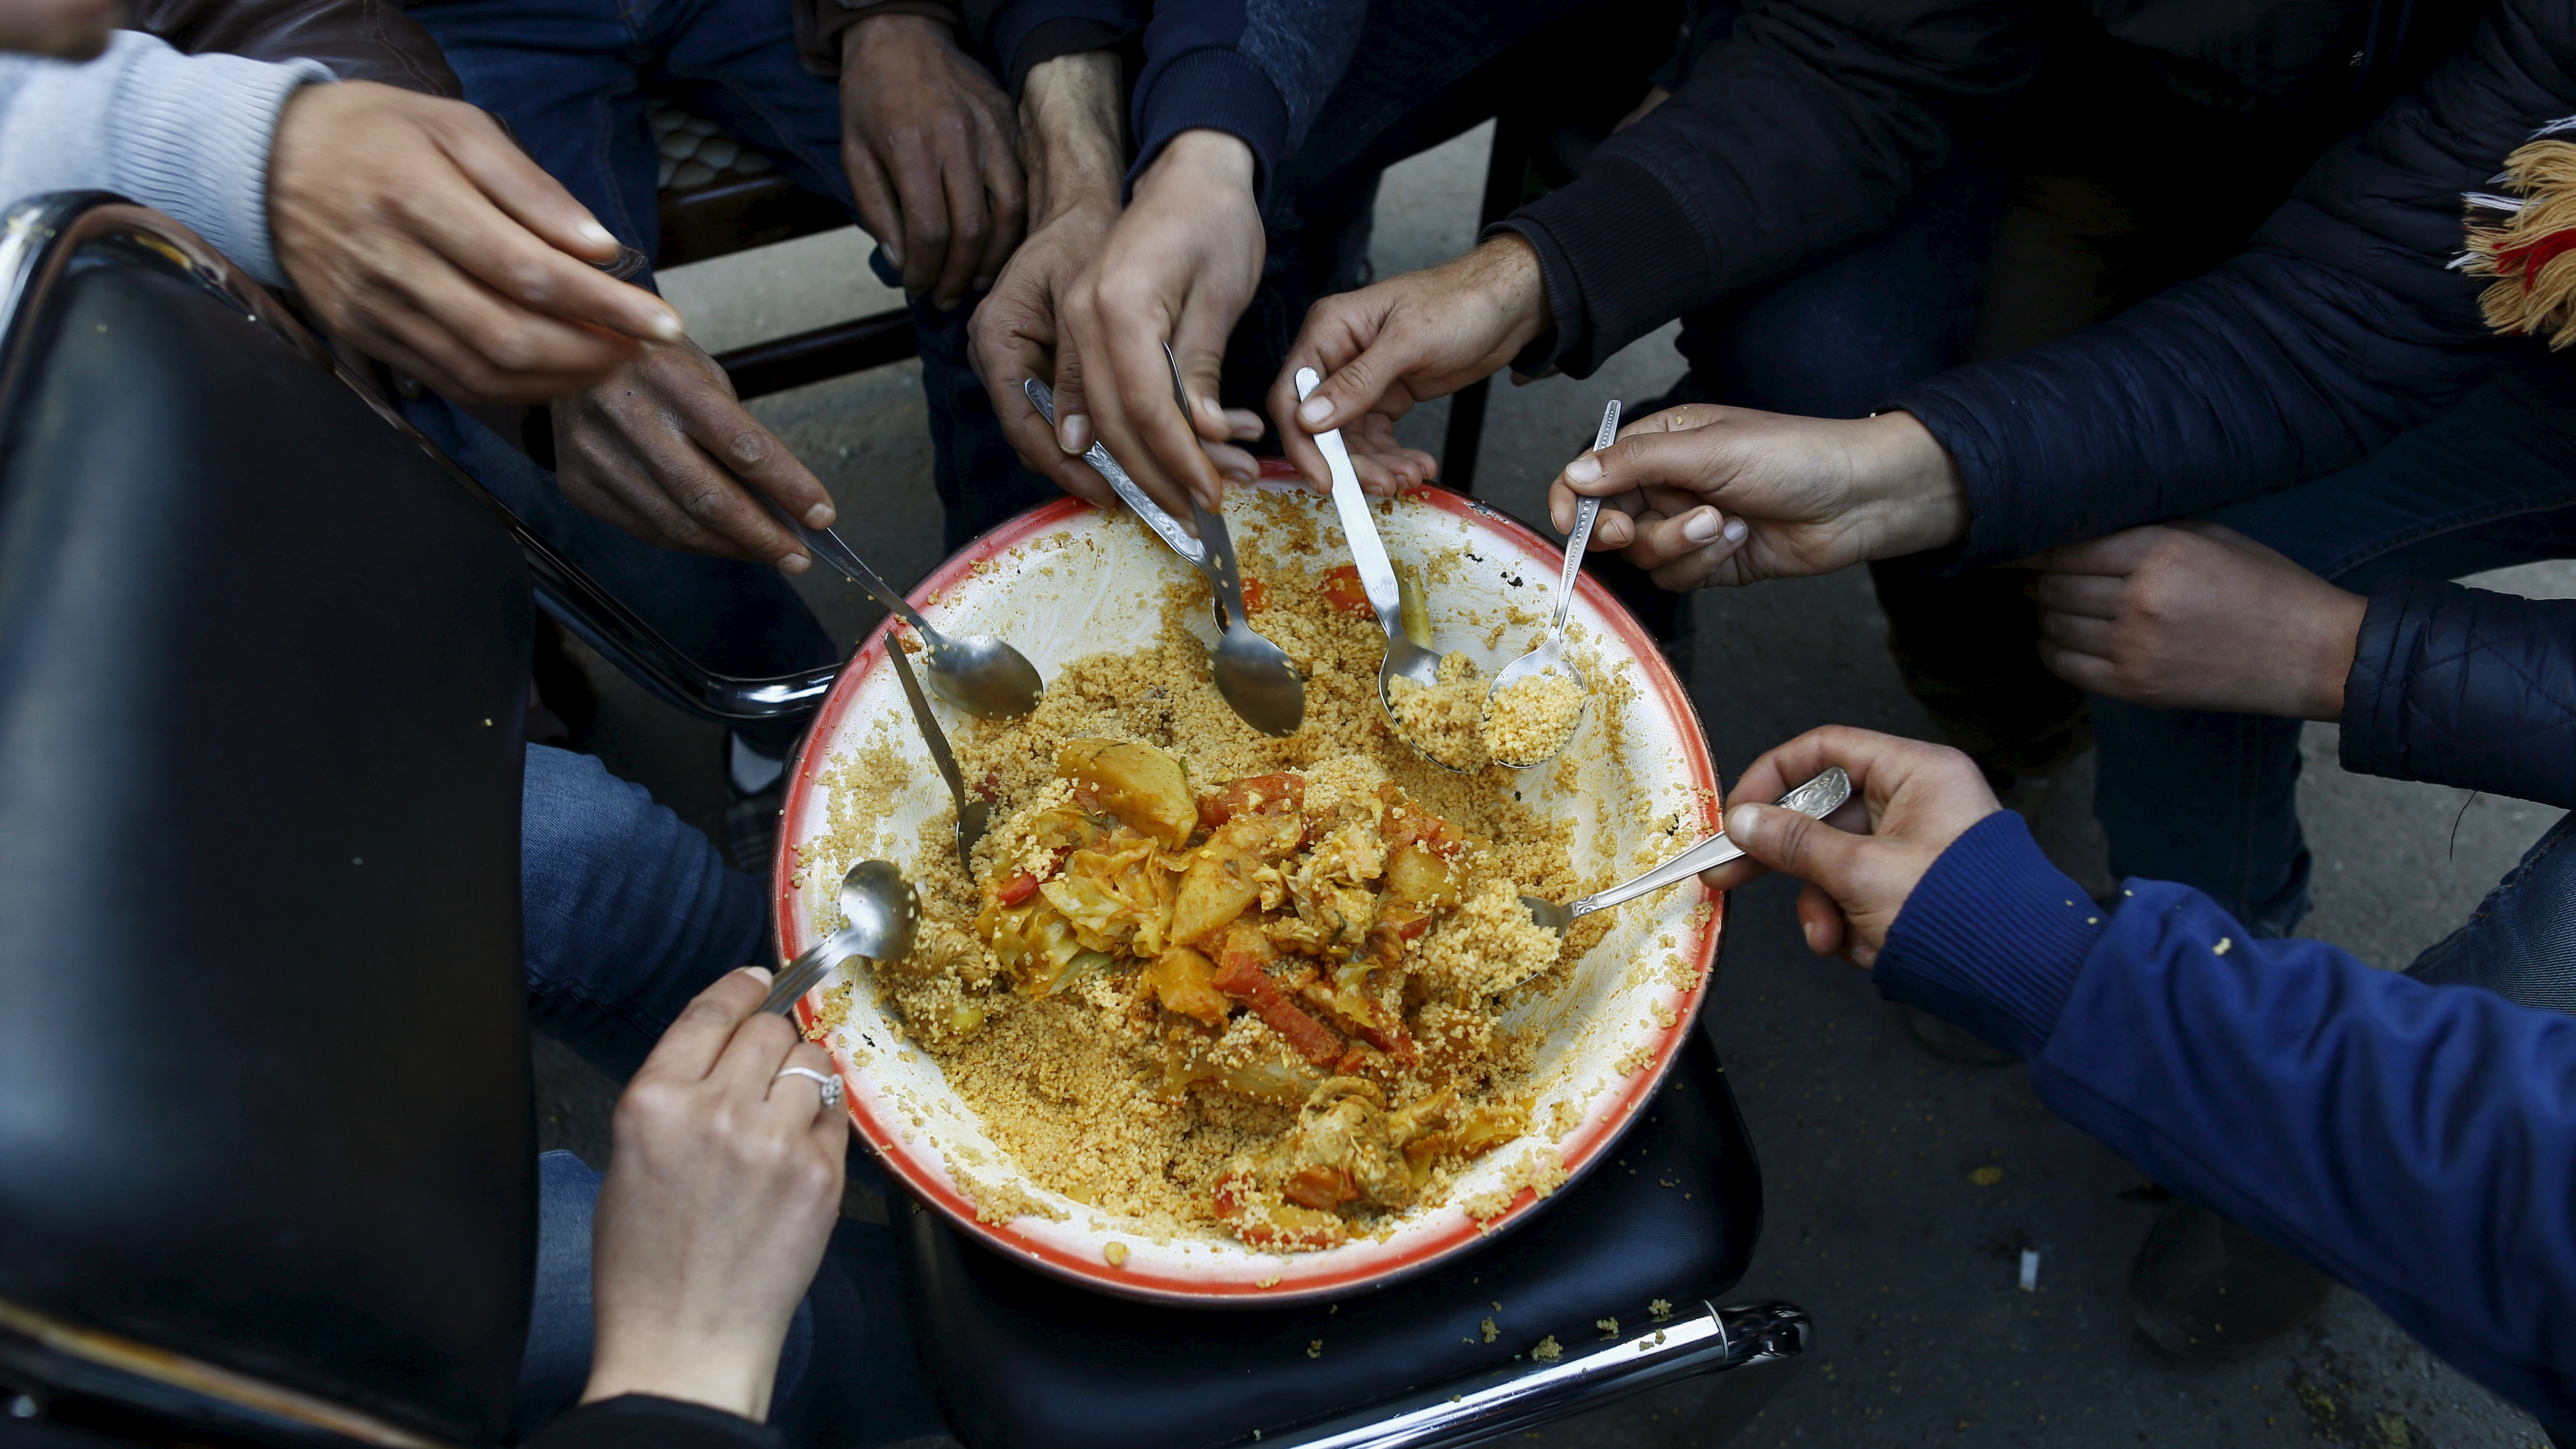 Unemployed graduates eat couscous as they hold a sit-in protest to get jobs, at the local government office premises in Kasserine, Tunisia, January 26, 2016. The protest is part of demonstrations which began last week after a young man killed himself after apparently being refused a public job. REUTERS/Zohra Bensemra - GF20000108029